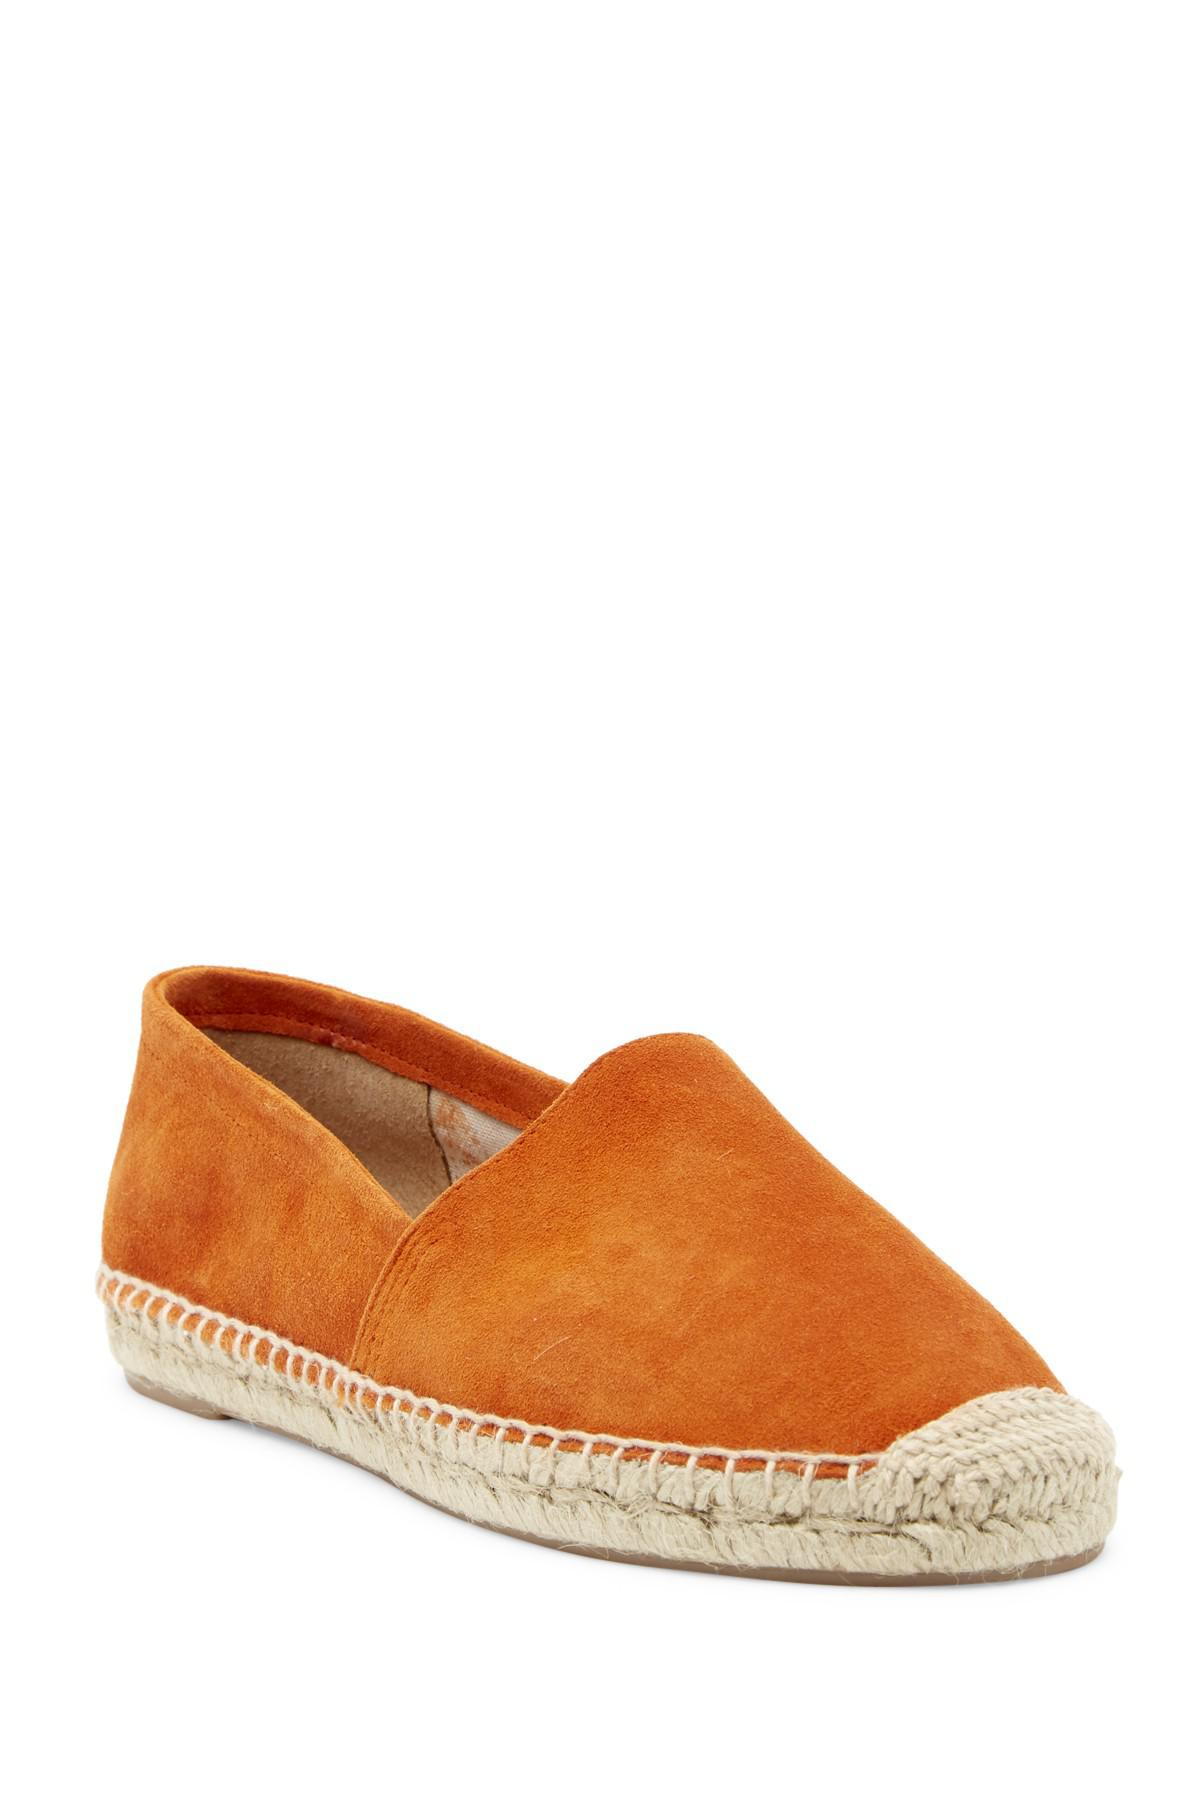 Patricia Green Andrea Espadrille Loafer LQAKRYo3c